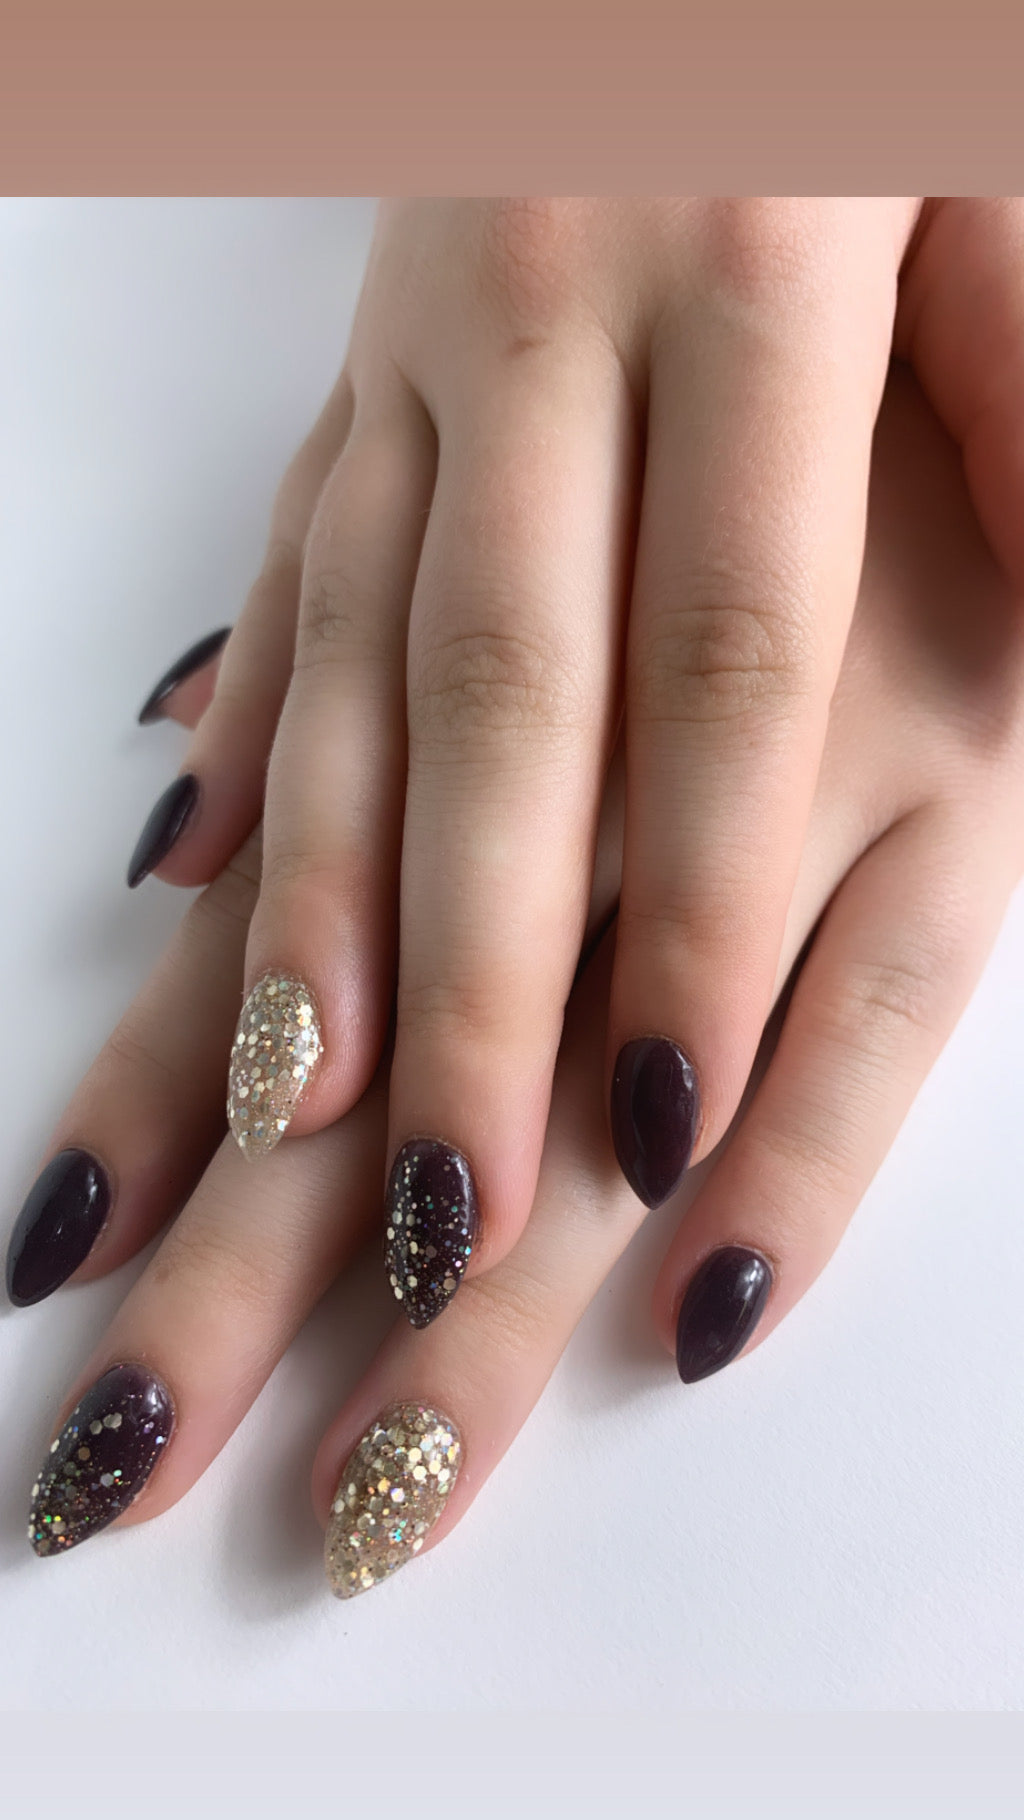 Photo of Cadence and Glitz dip powder manicure